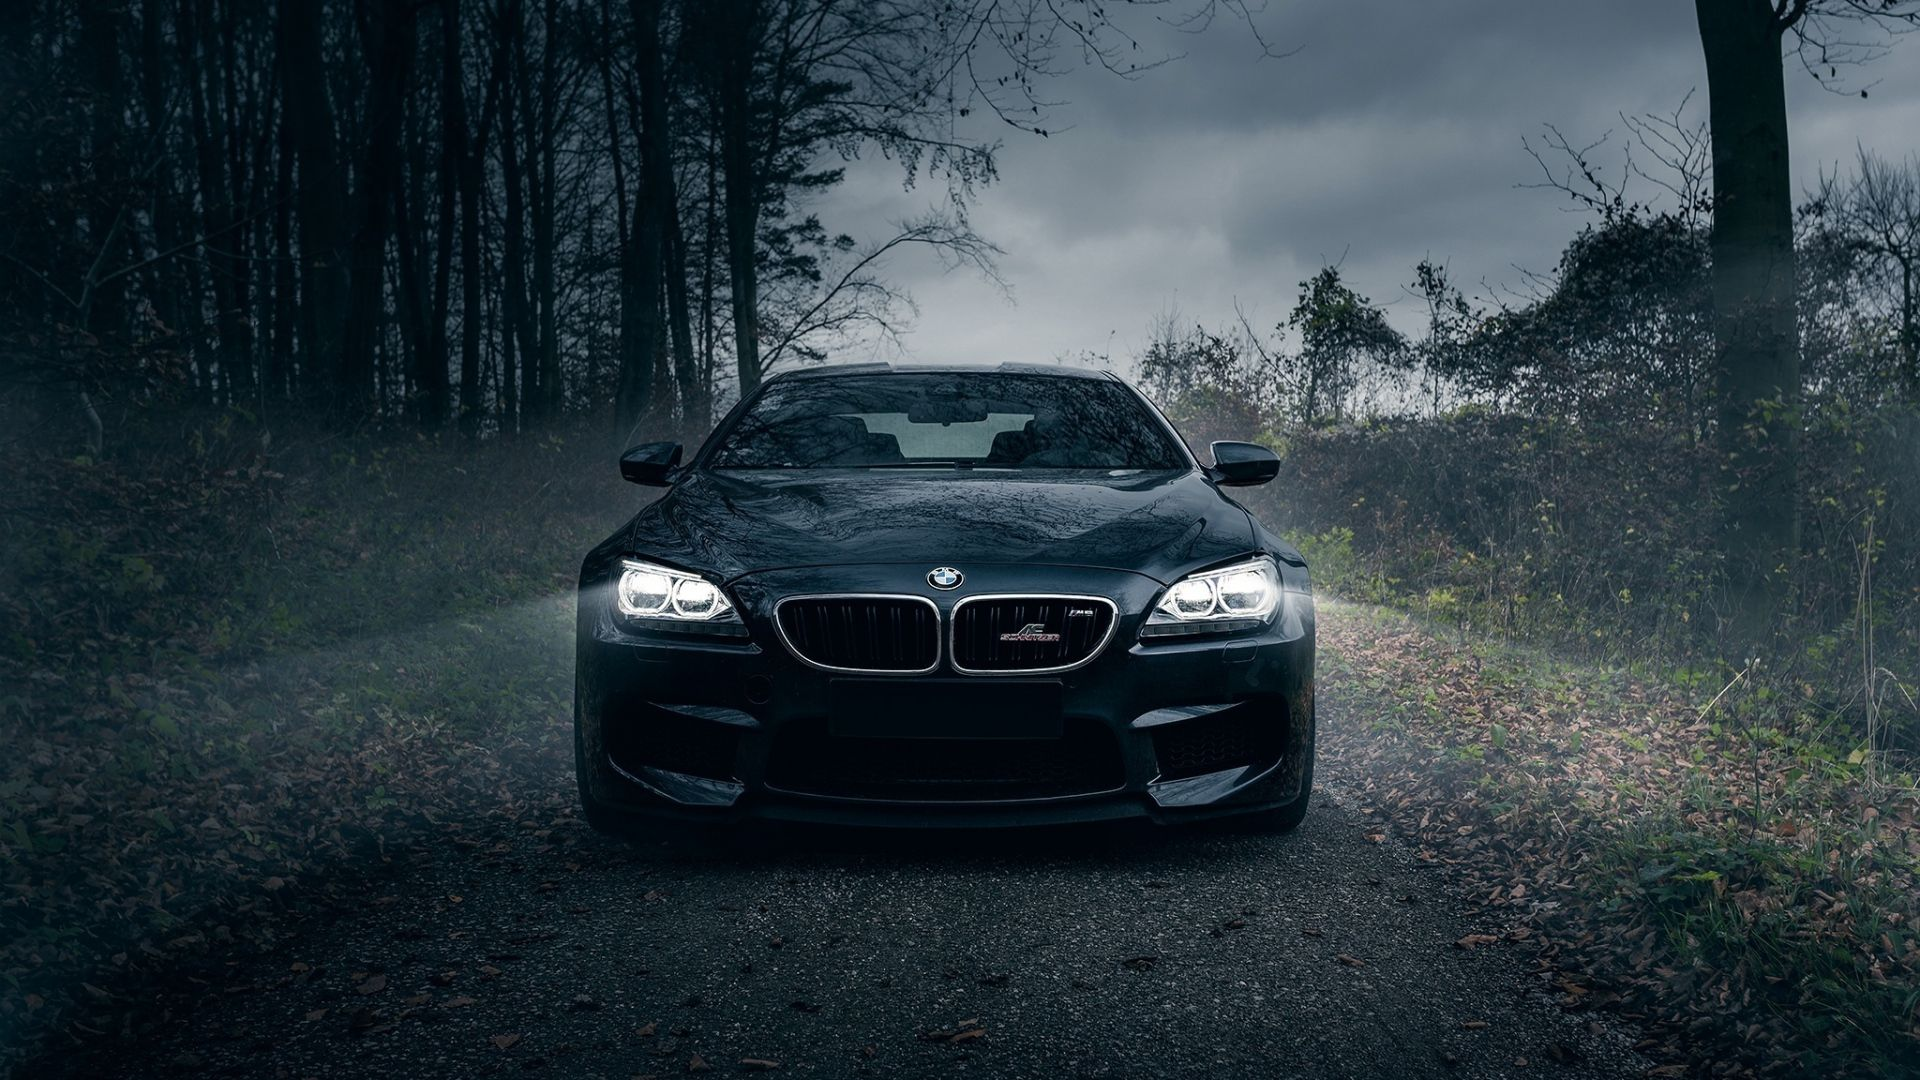 1920x1080 Wallpaper Bmw M6 Dark Knight Black Forest